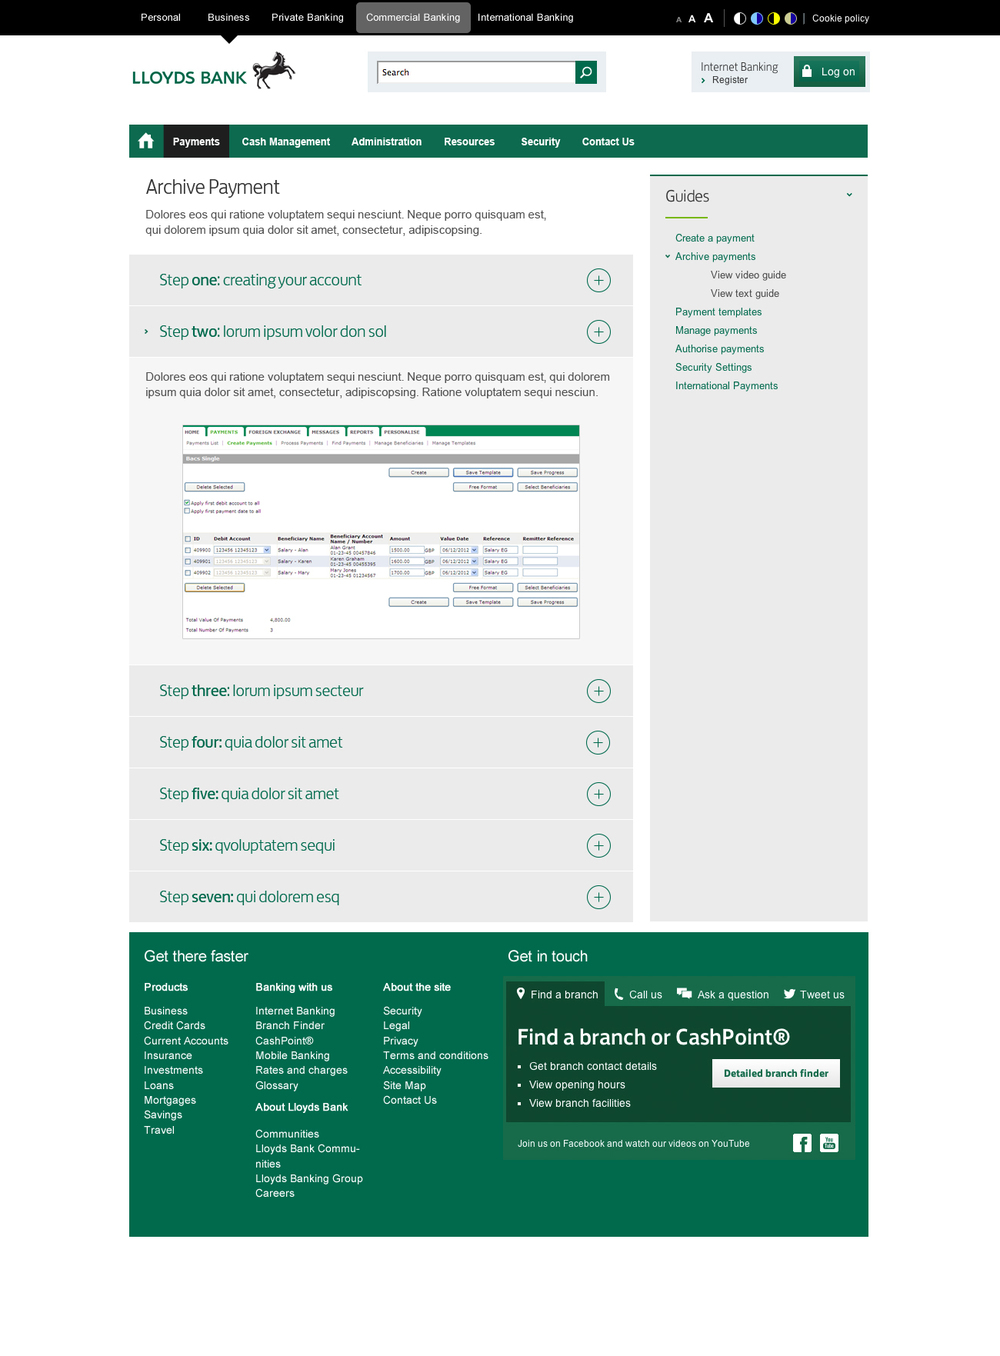 lloyds bank support centre responsive design — michael ruocco ...